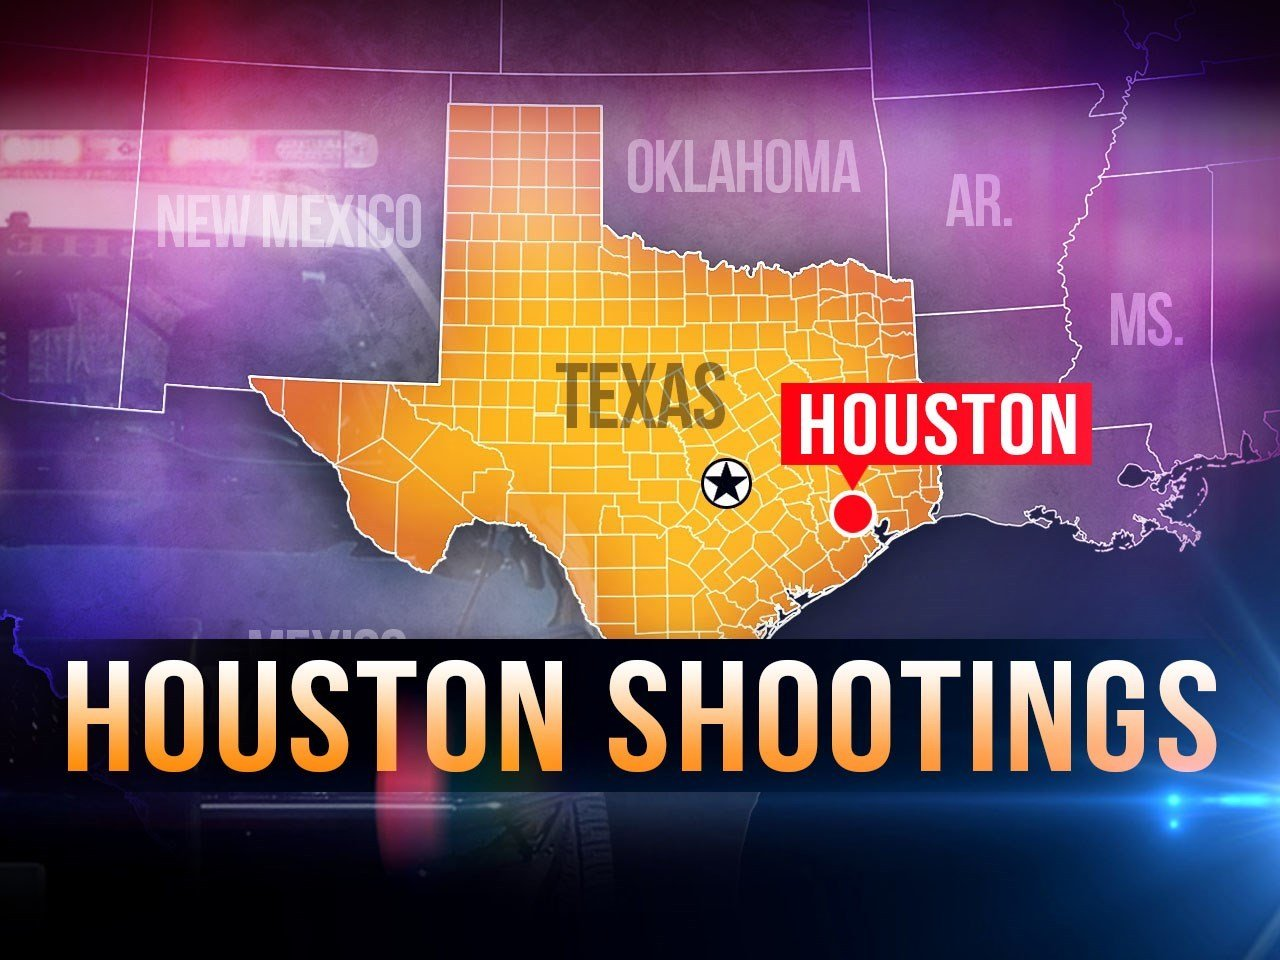 2 dead, 4 wounded in shooting at Houston apartment complex